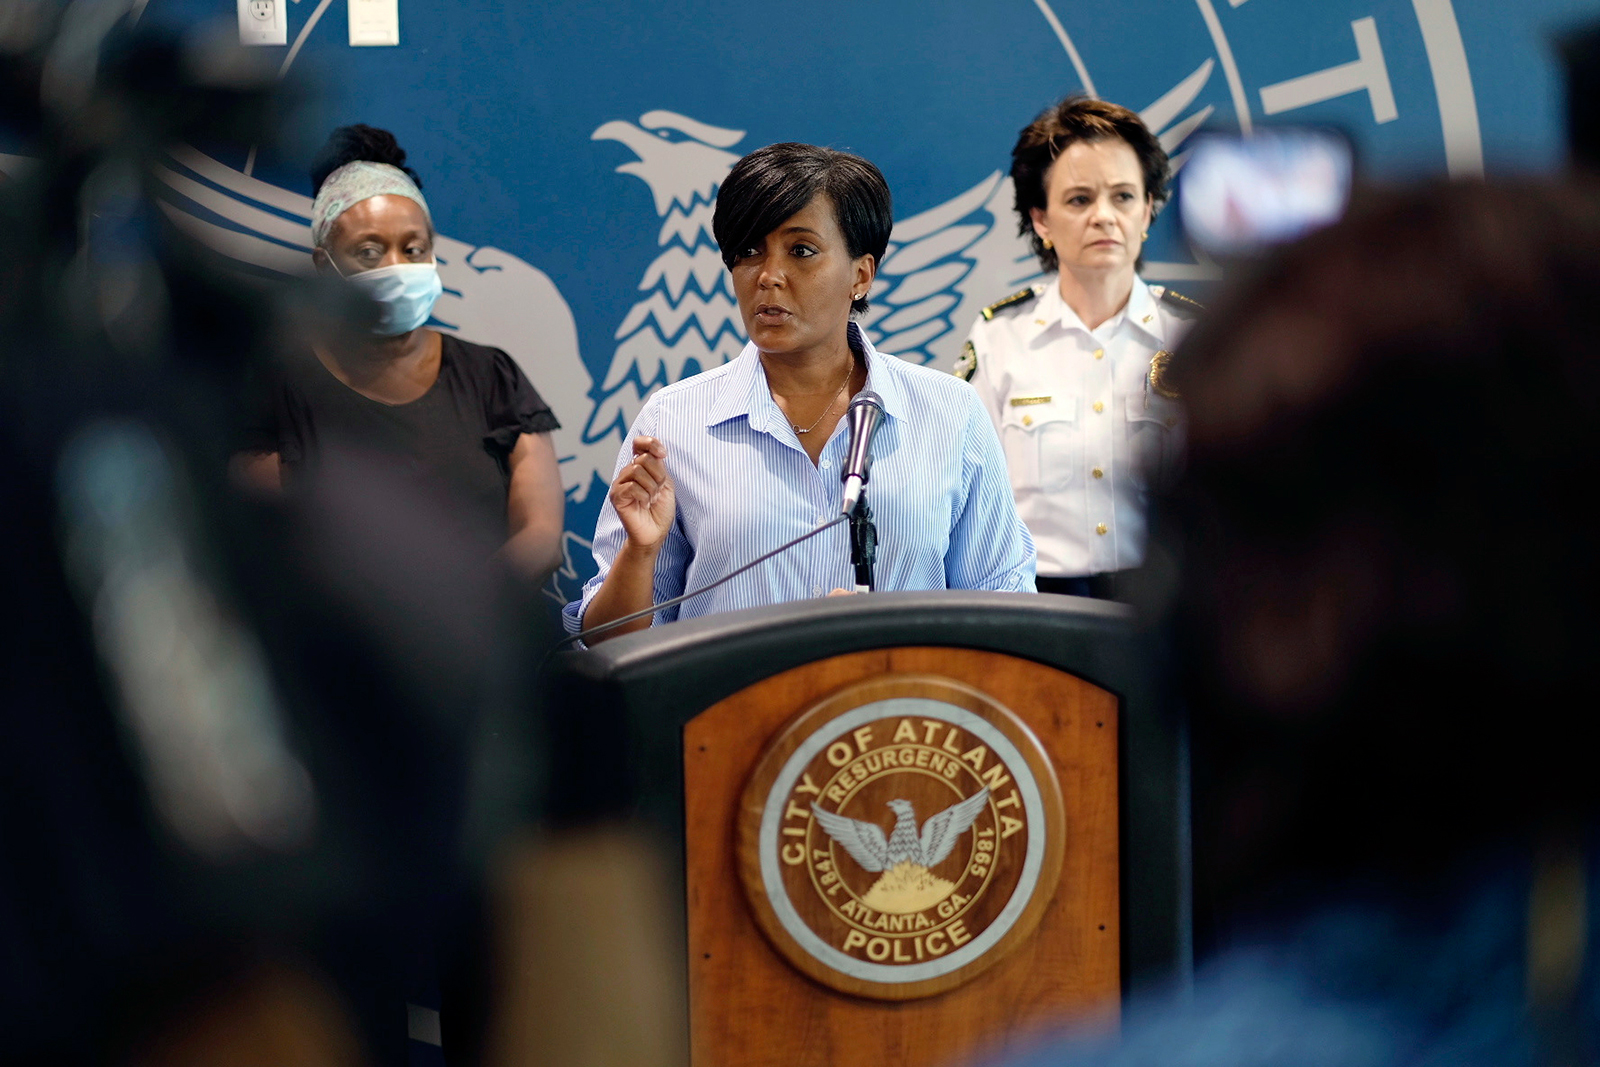 Atlanta Mayor Keisha Lance Bottoms speaks at a news conference about the George Floyd protests in Atlanta, on May 30.